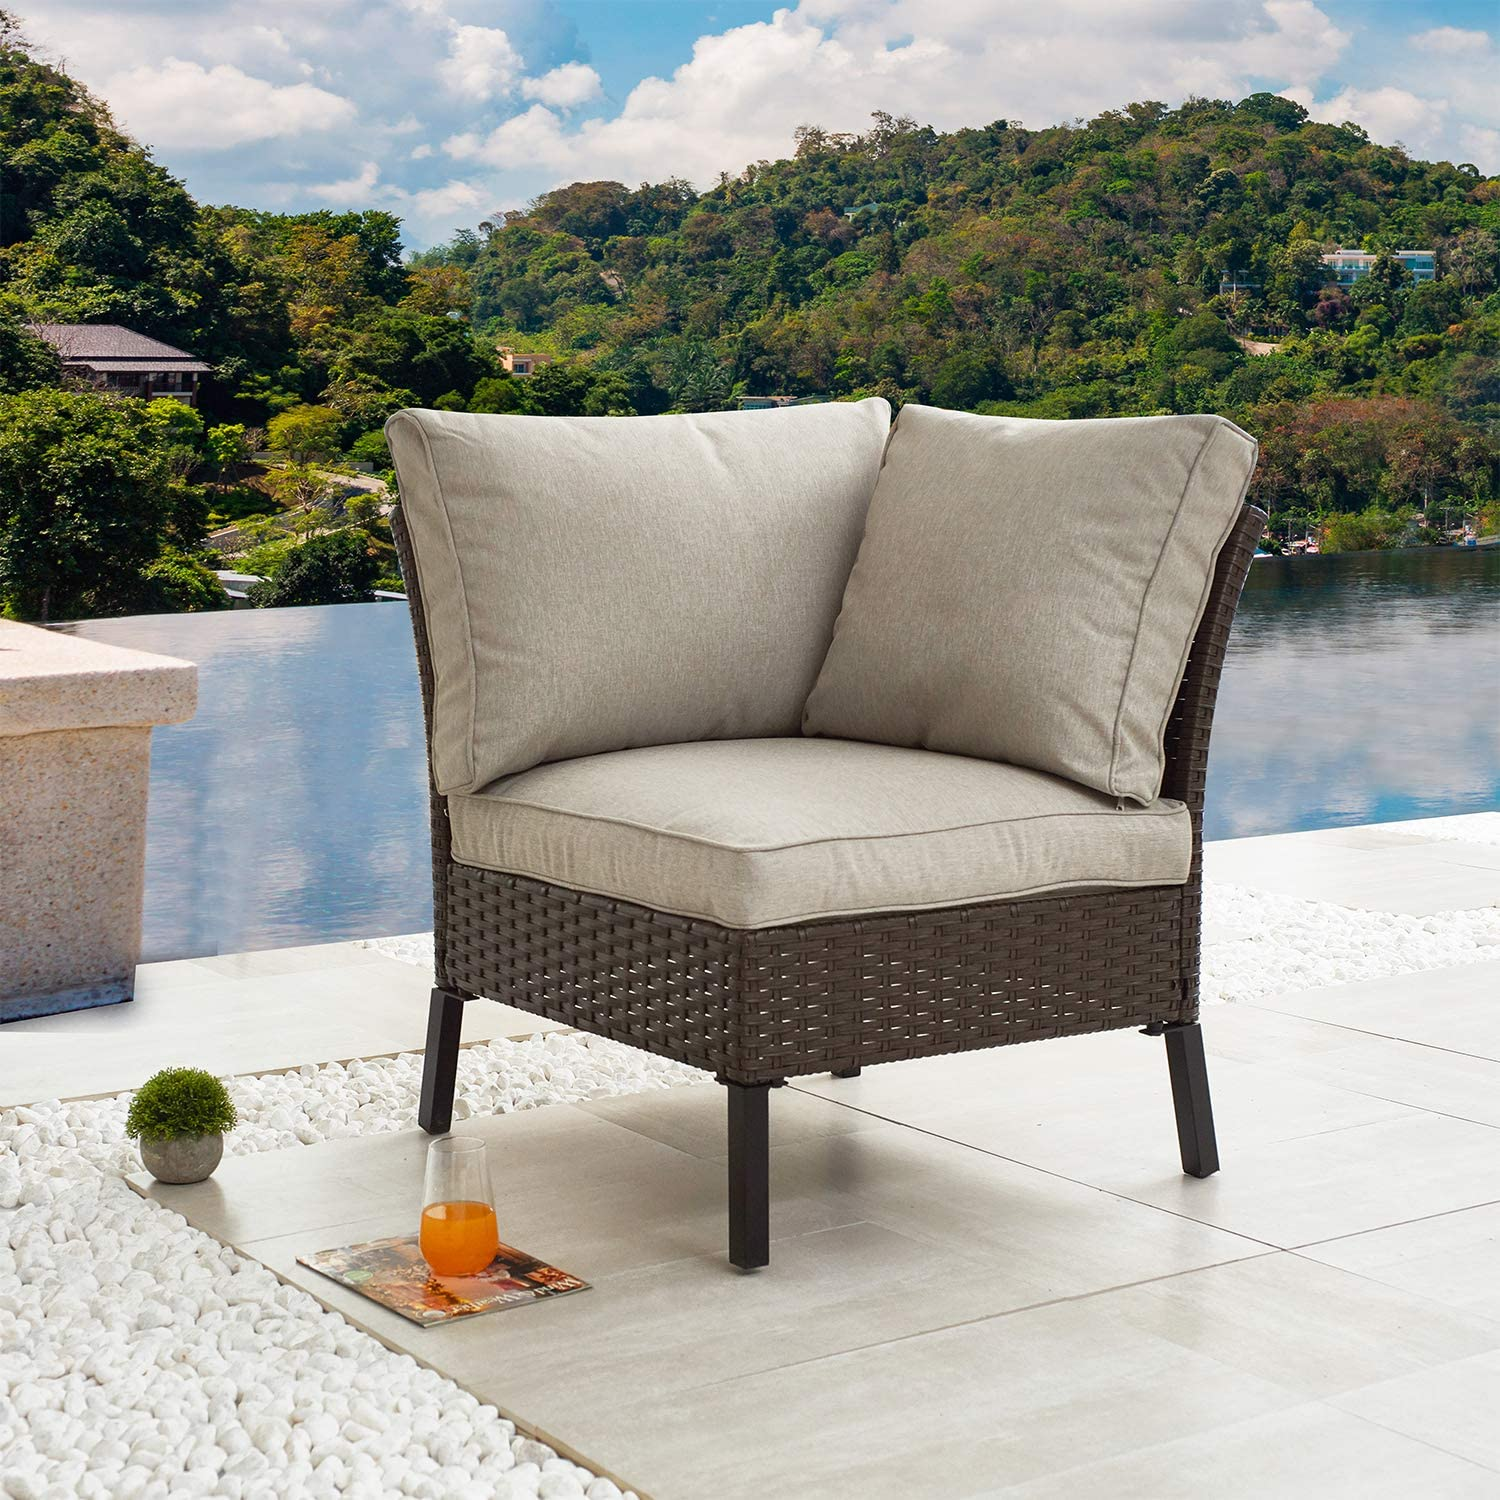 Festival SEAL limited product Depot Outdoor Patio Special sale item Conversation Corner Chair Sectional